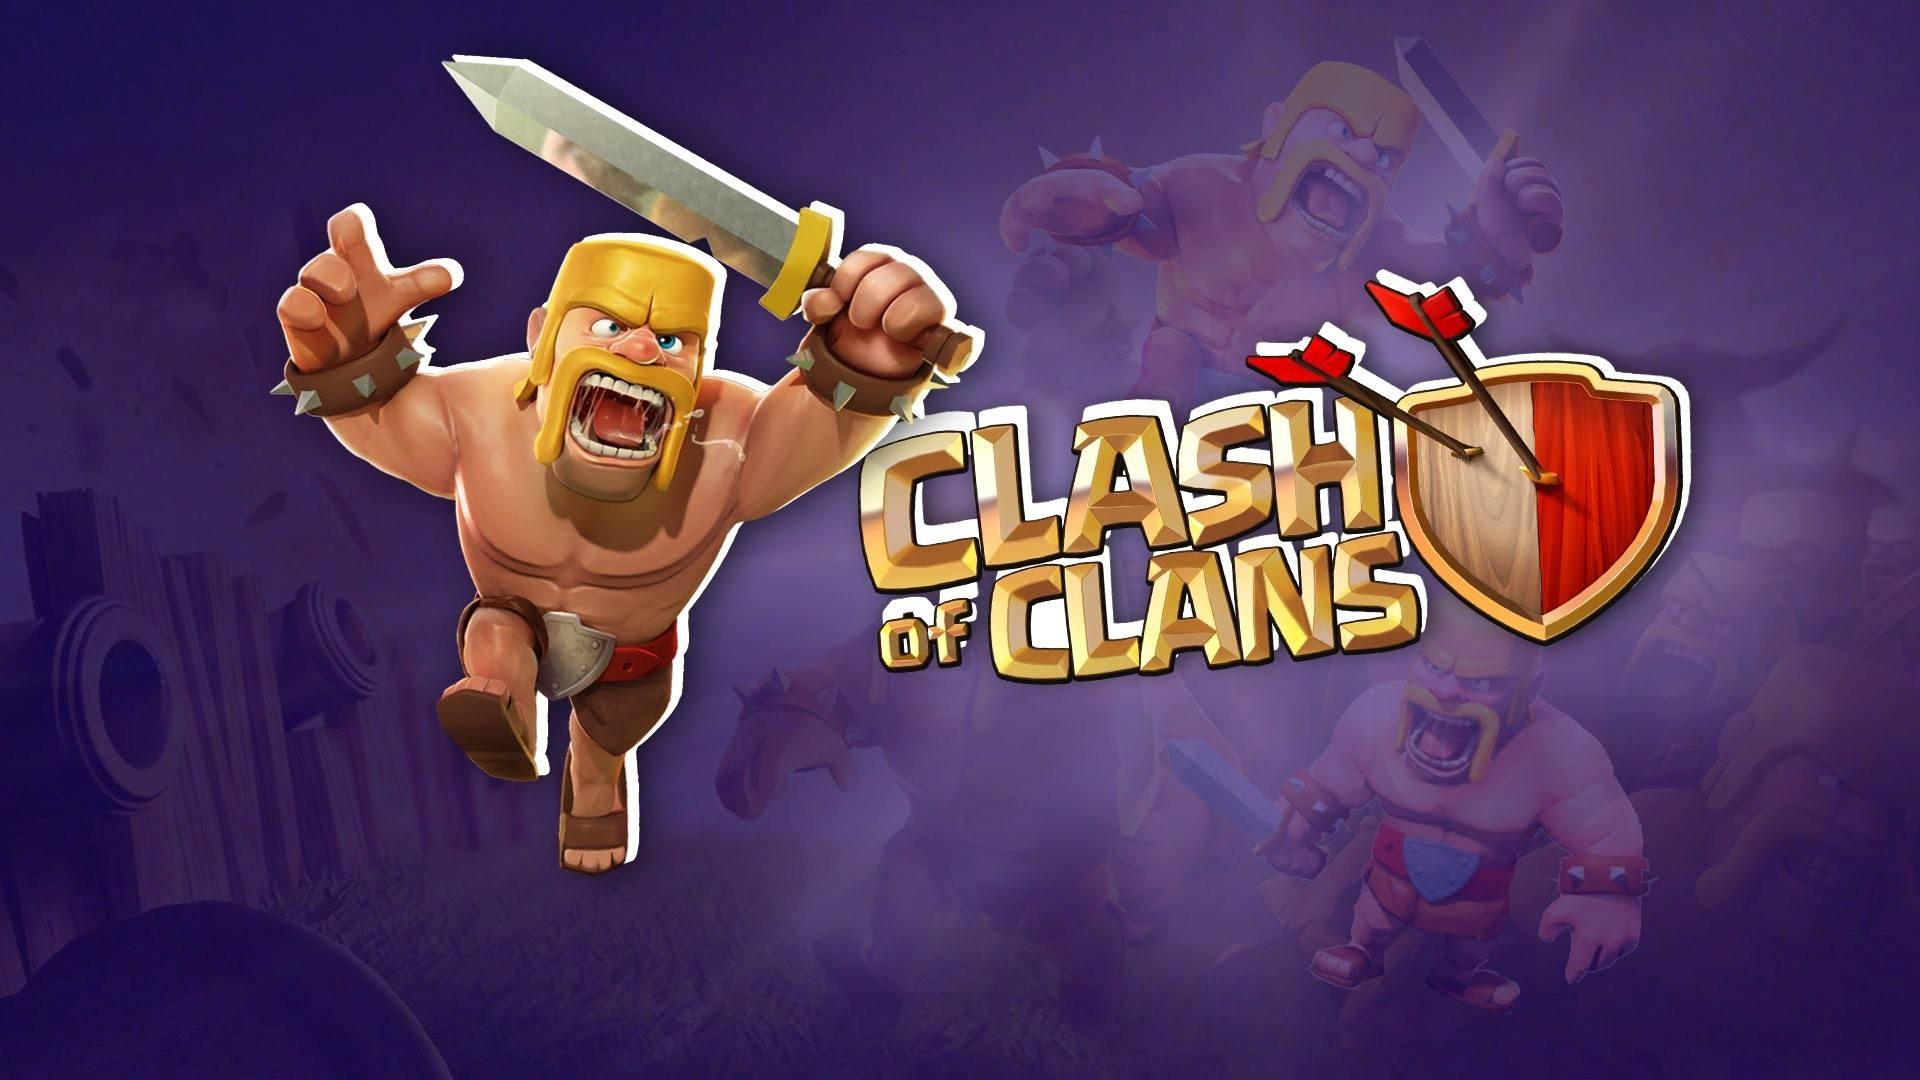 Clash Of Clans free picture